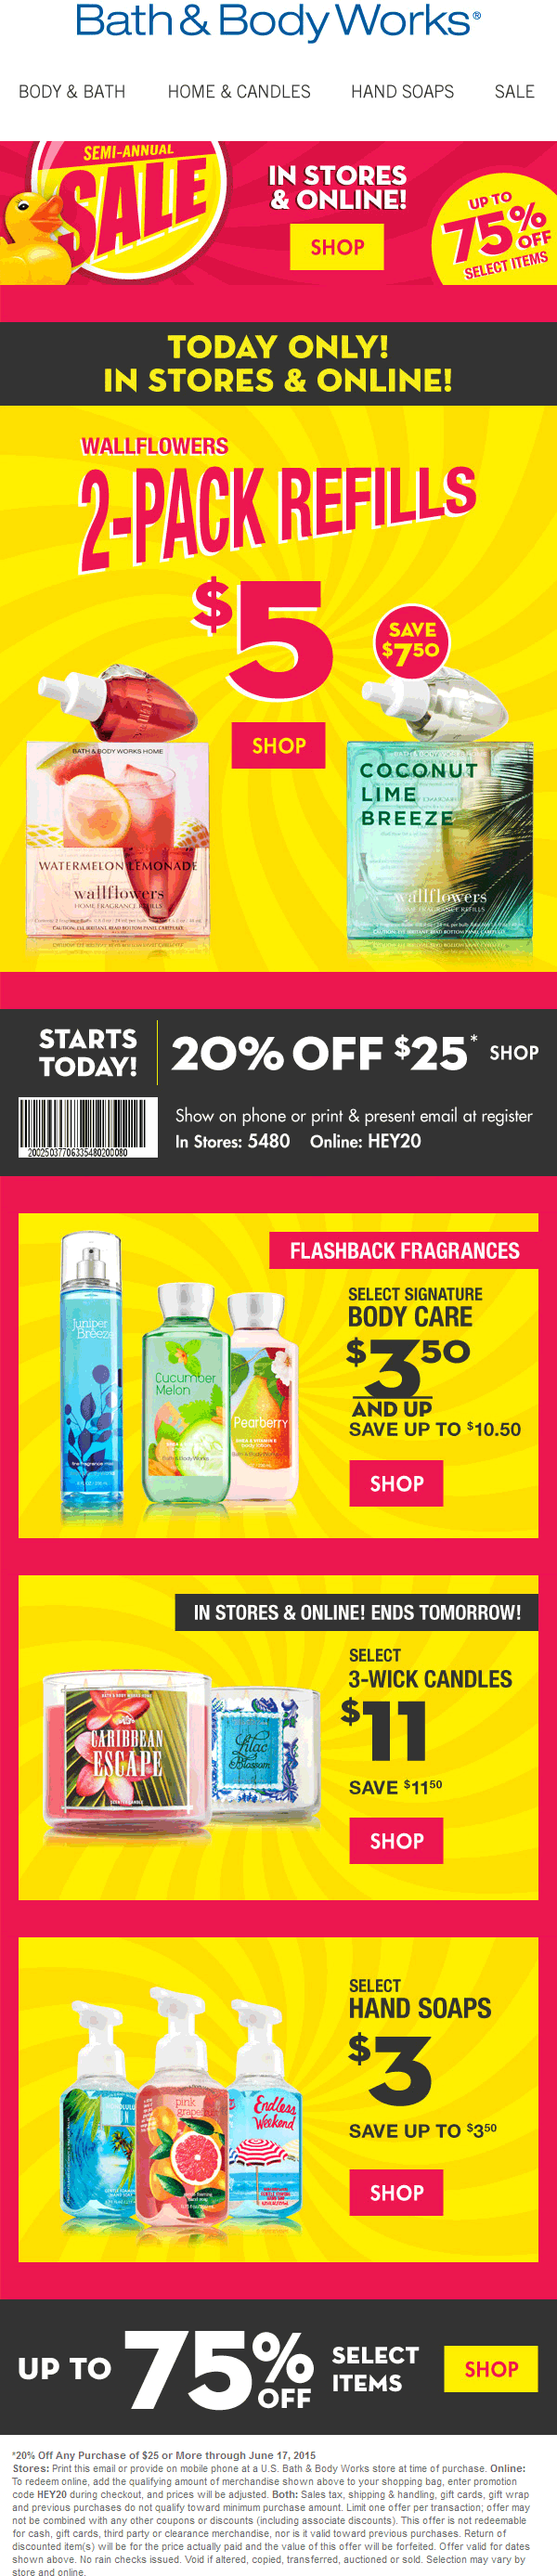 Bath & Body Works Coupon April 2018 20% off $25 at Bath & Body Works, or online via promo code HEY20